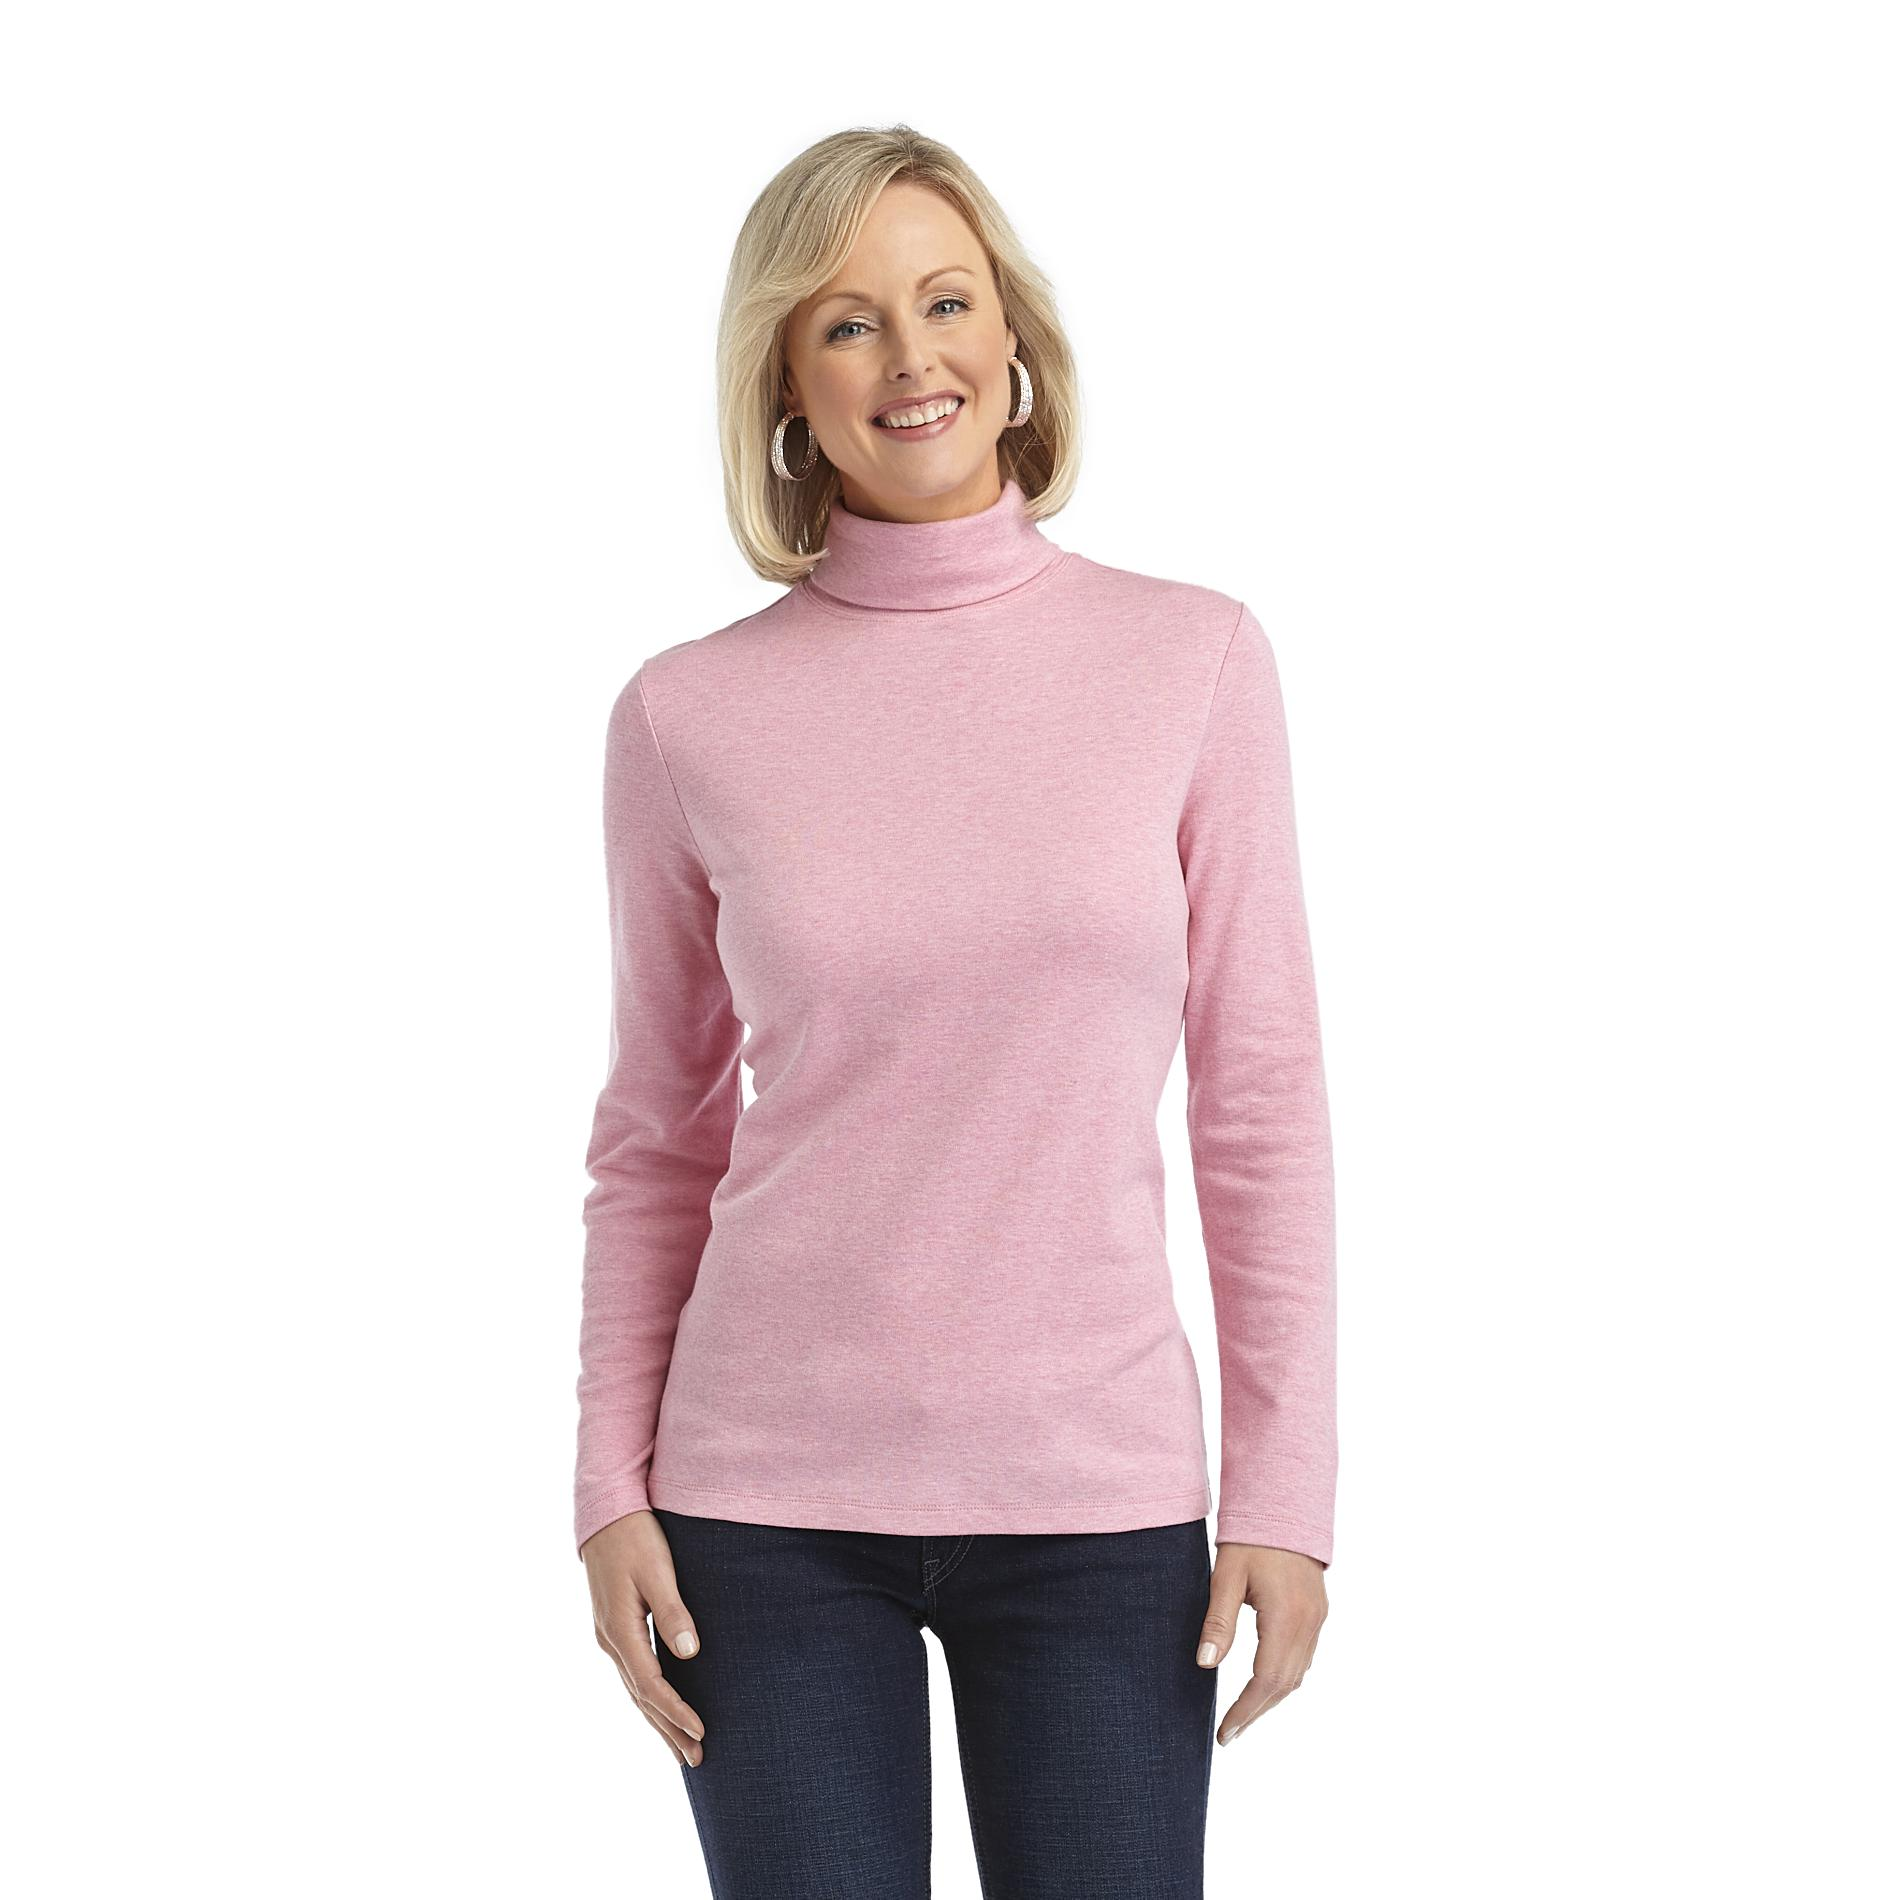 Laura Scott Women's Turtleneck Top - Solid at Sears.com